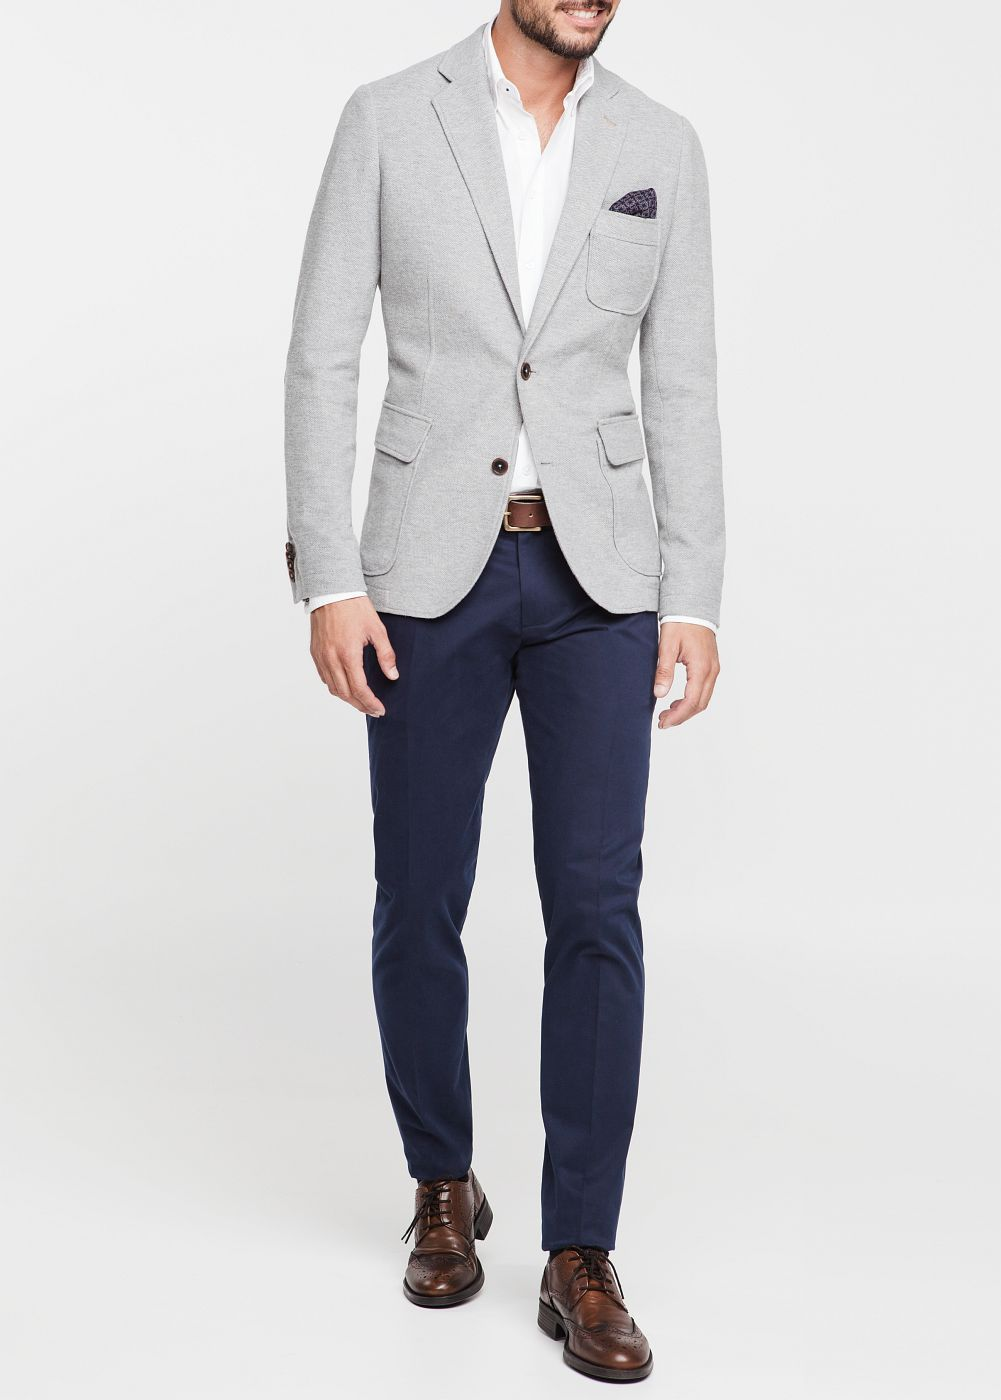 7f2fd906f51f Buy Mango Men's Gray Cotton Pique Blazer, starting at $66. Similar products  also available. SALE now on!